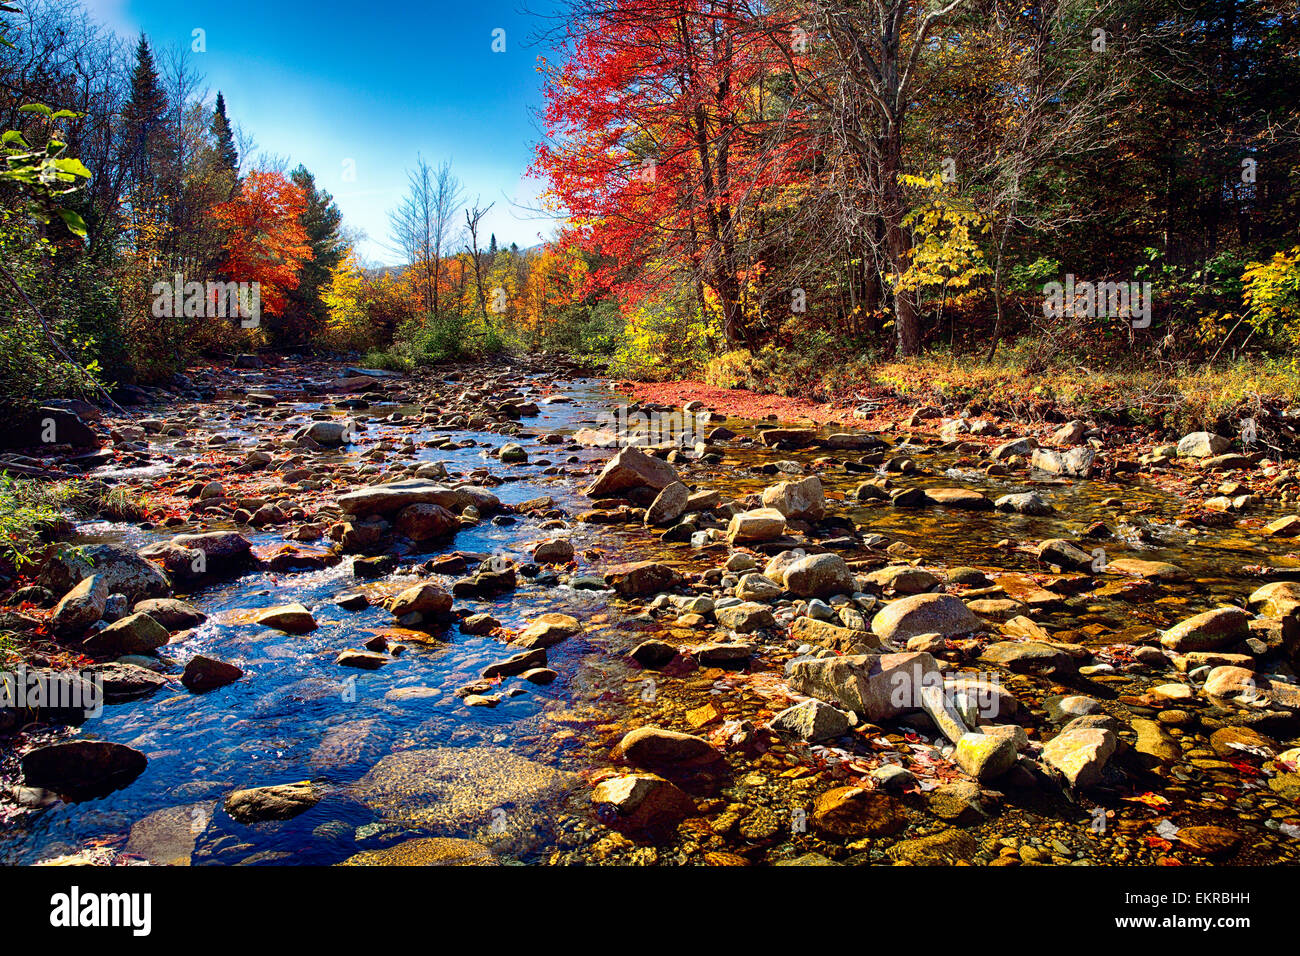 Low Angle View of a Rocky River Bed avec feuillage d'automne, Franconia, New Hampshire, USA Photo Stock